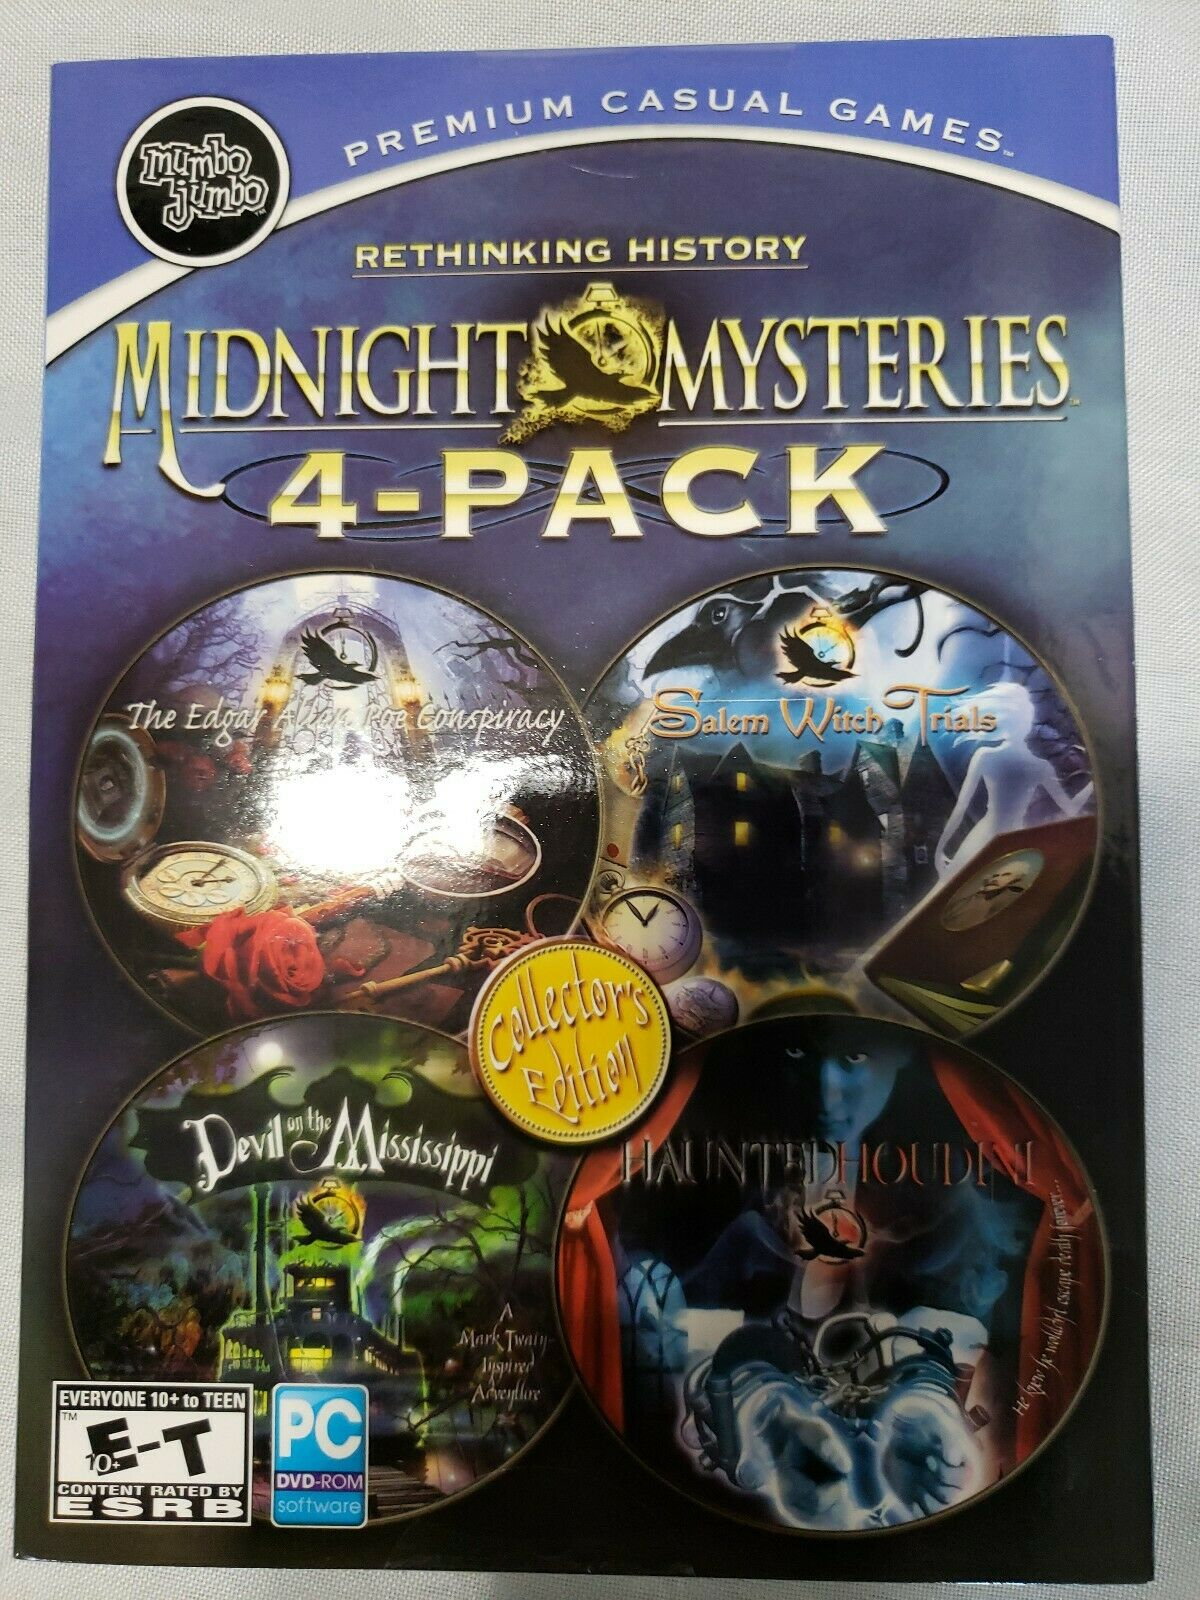 Computer Games - Midnight Mysteries 4-Pack Collectors Edition 2012  PC DVD ROM Computer Games